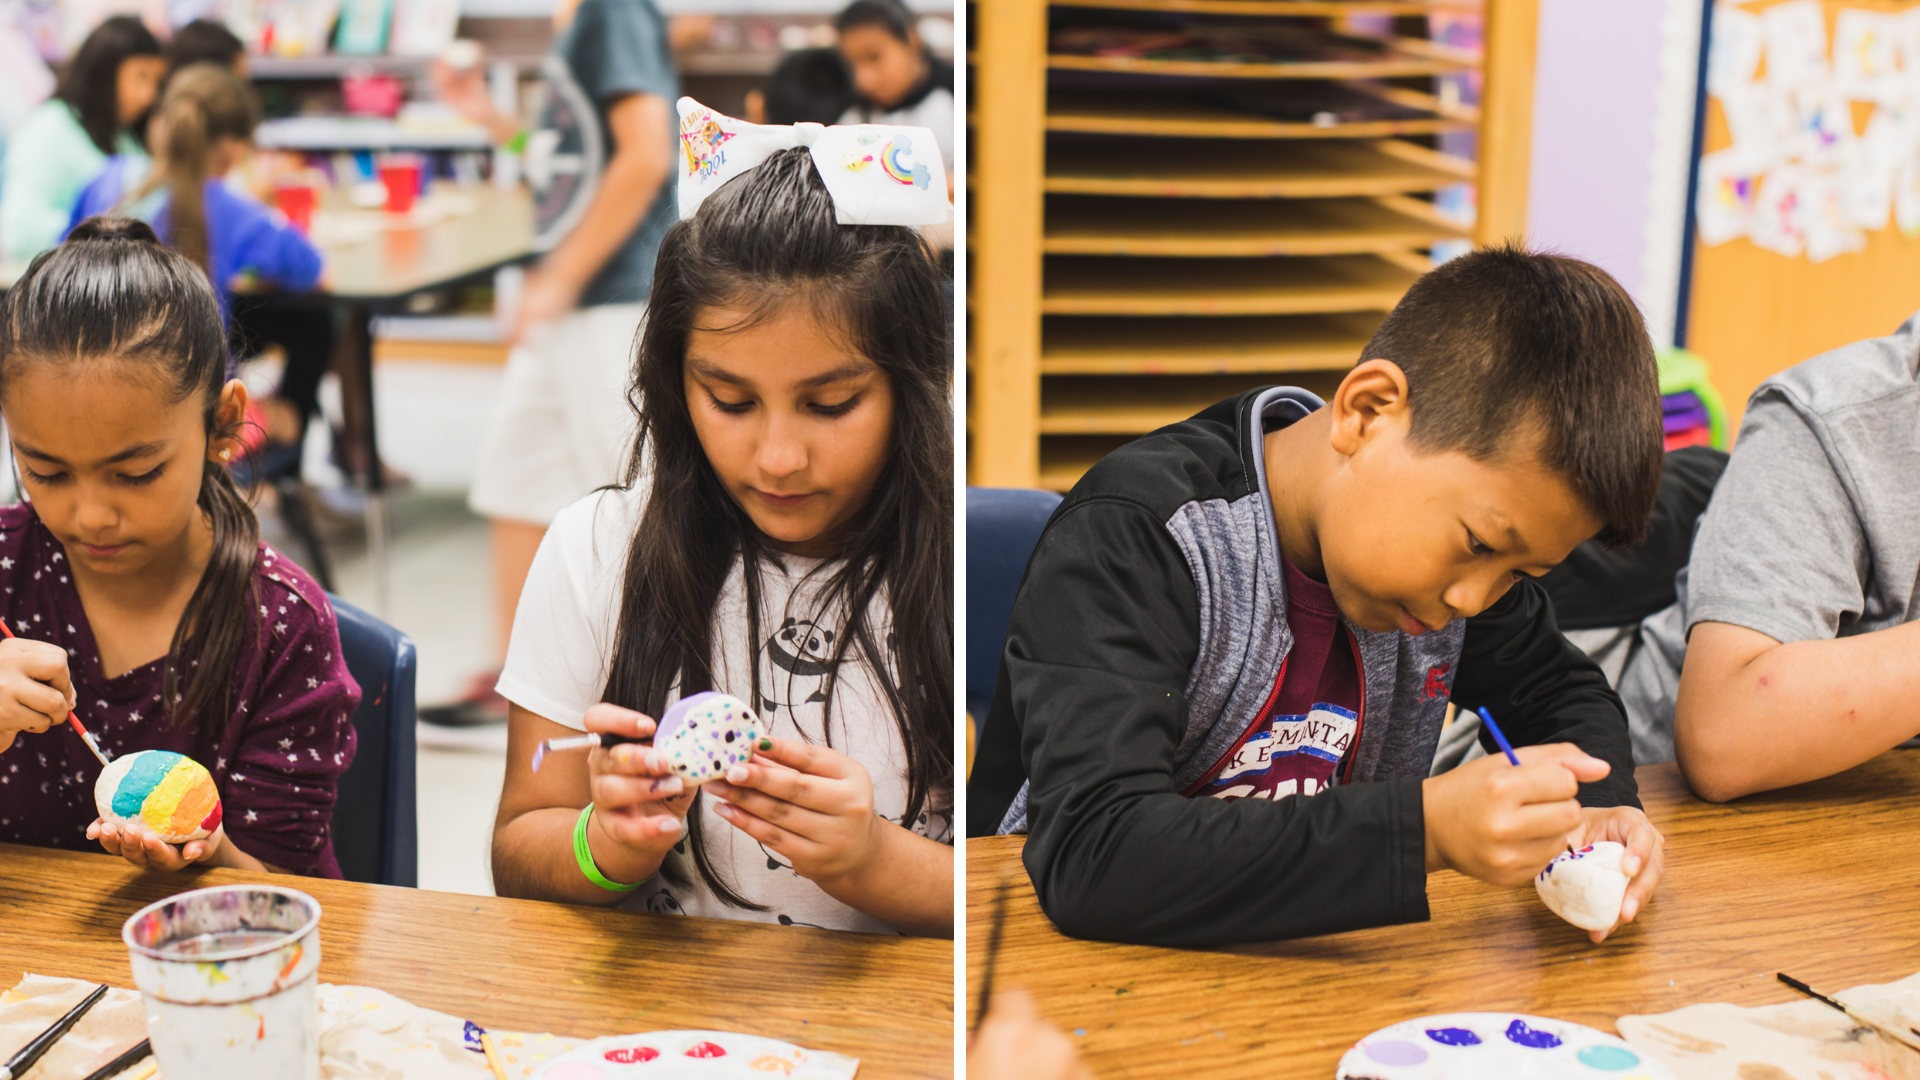 Students paint rocks together in 2019.